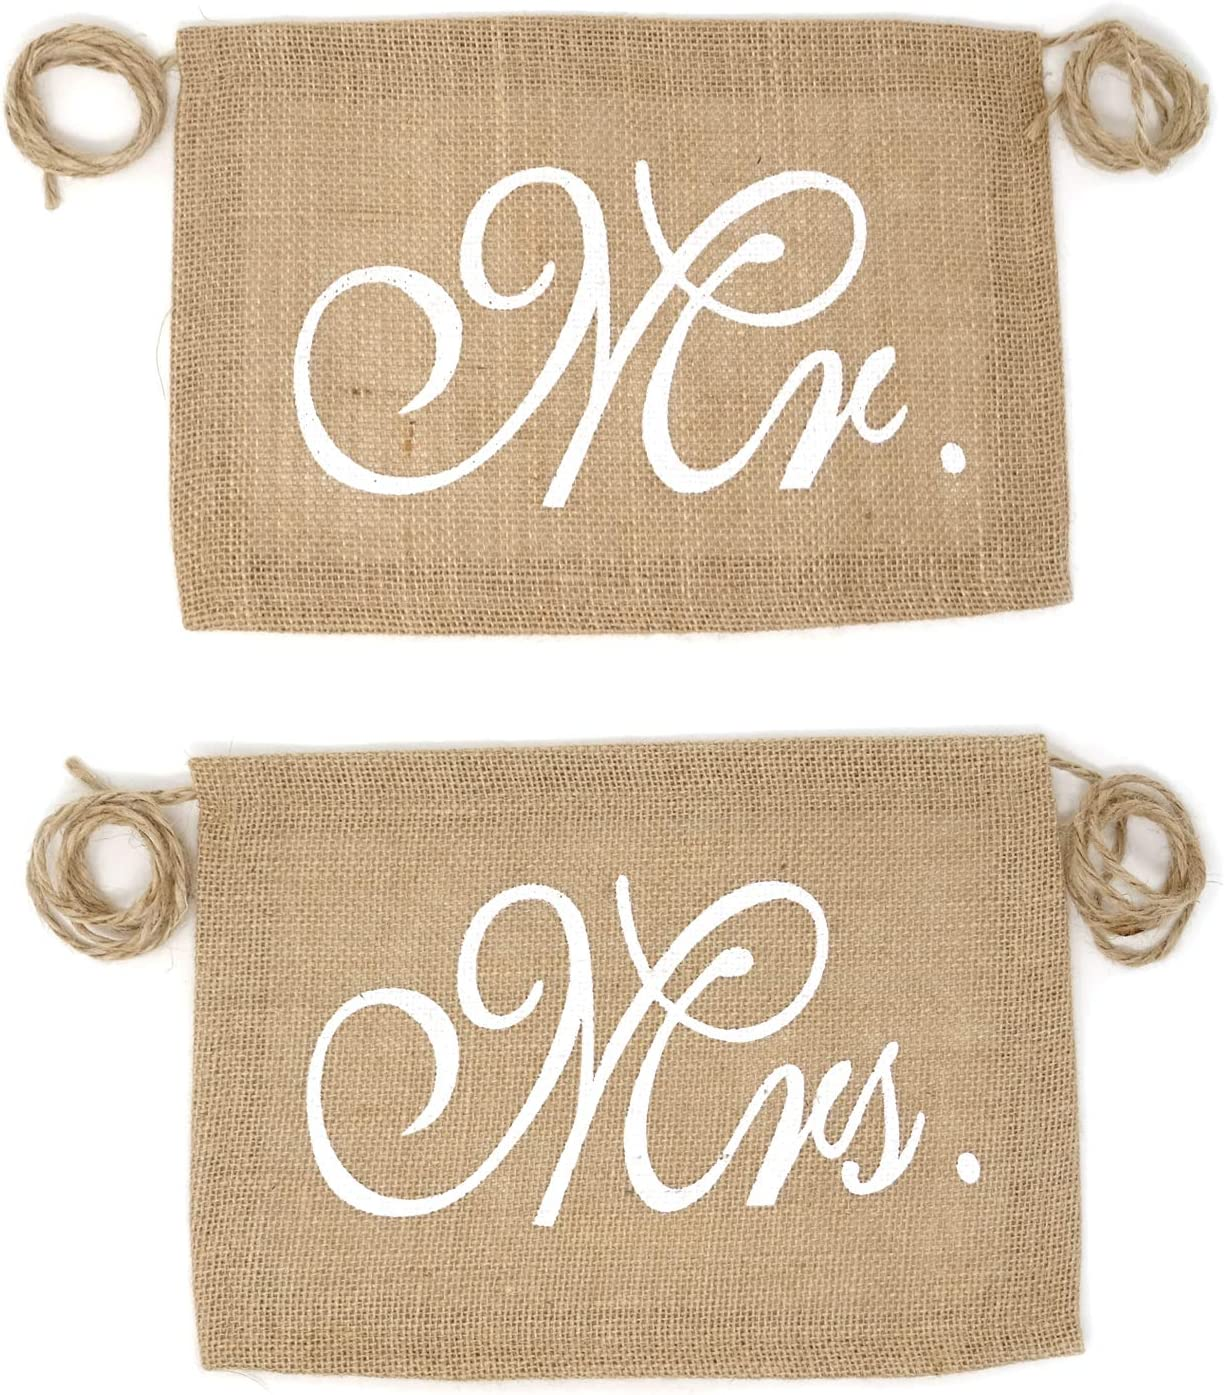 Honbay Mr and Mrs Chair Burlap Chair Banner Bride & Groom Chair Signs Garland for Vintage Rustic Wedding Decorations, Engagement Party Supplies